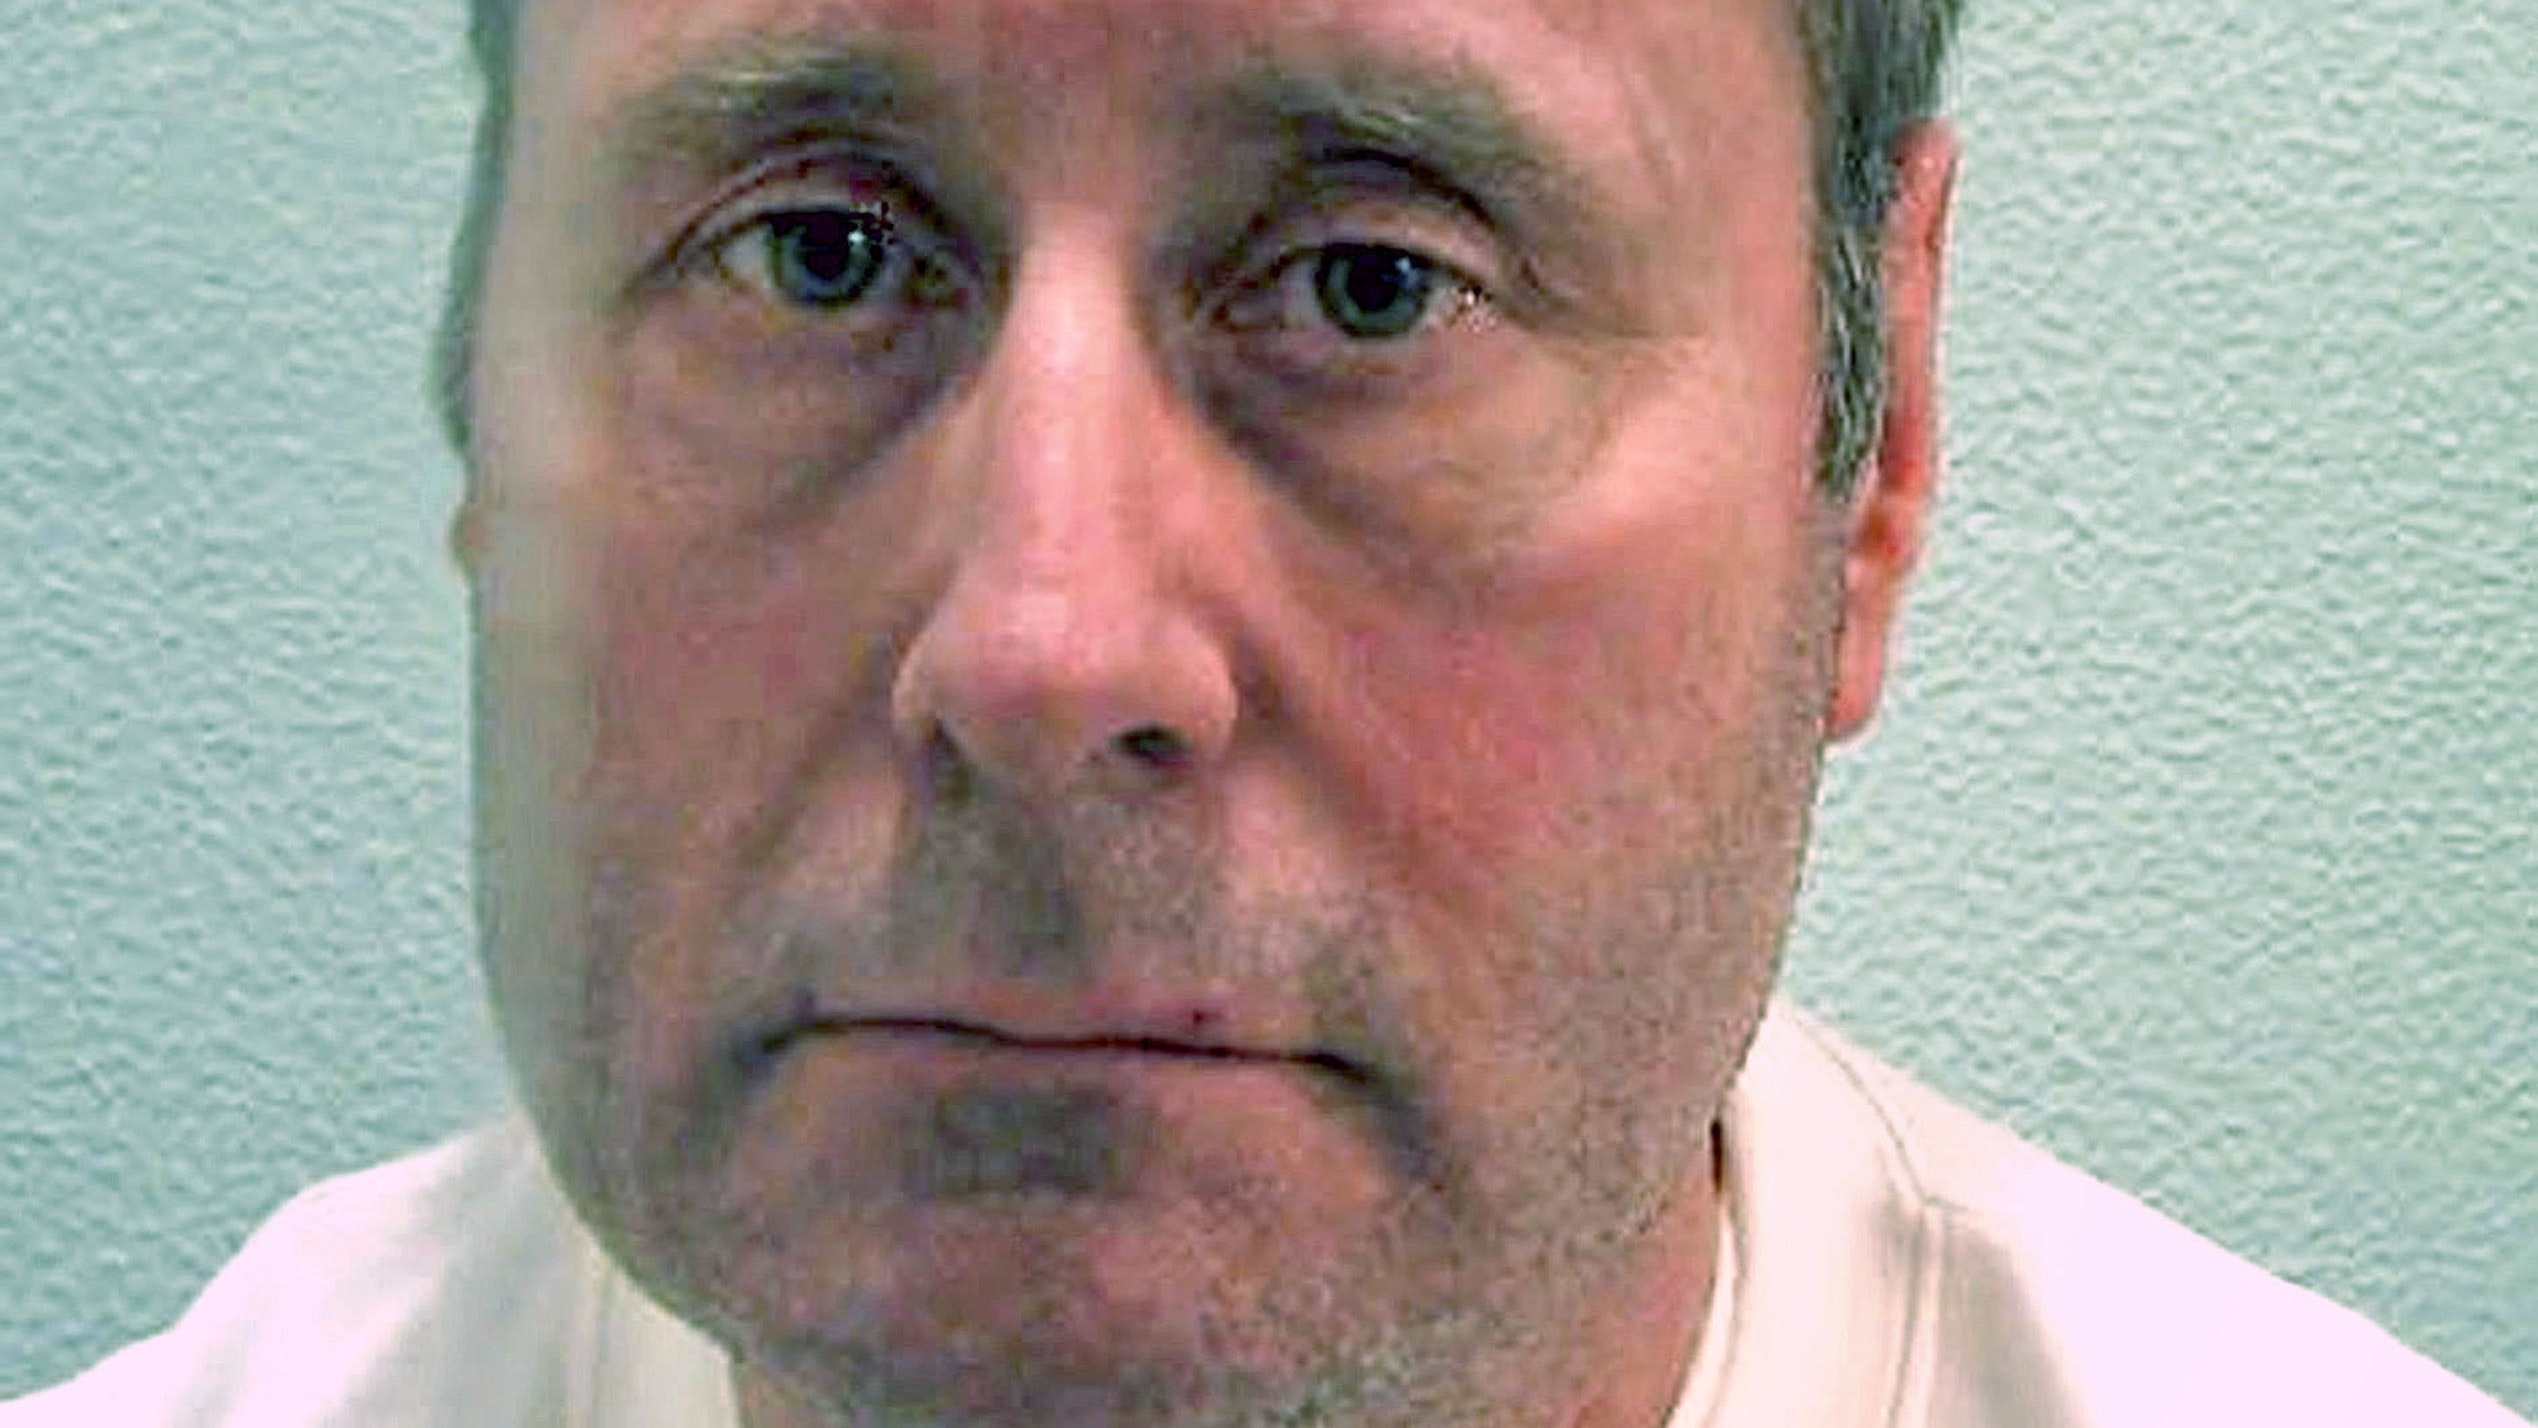 Supreme Court verdict won't keep John Worboys in jail, says lawyer